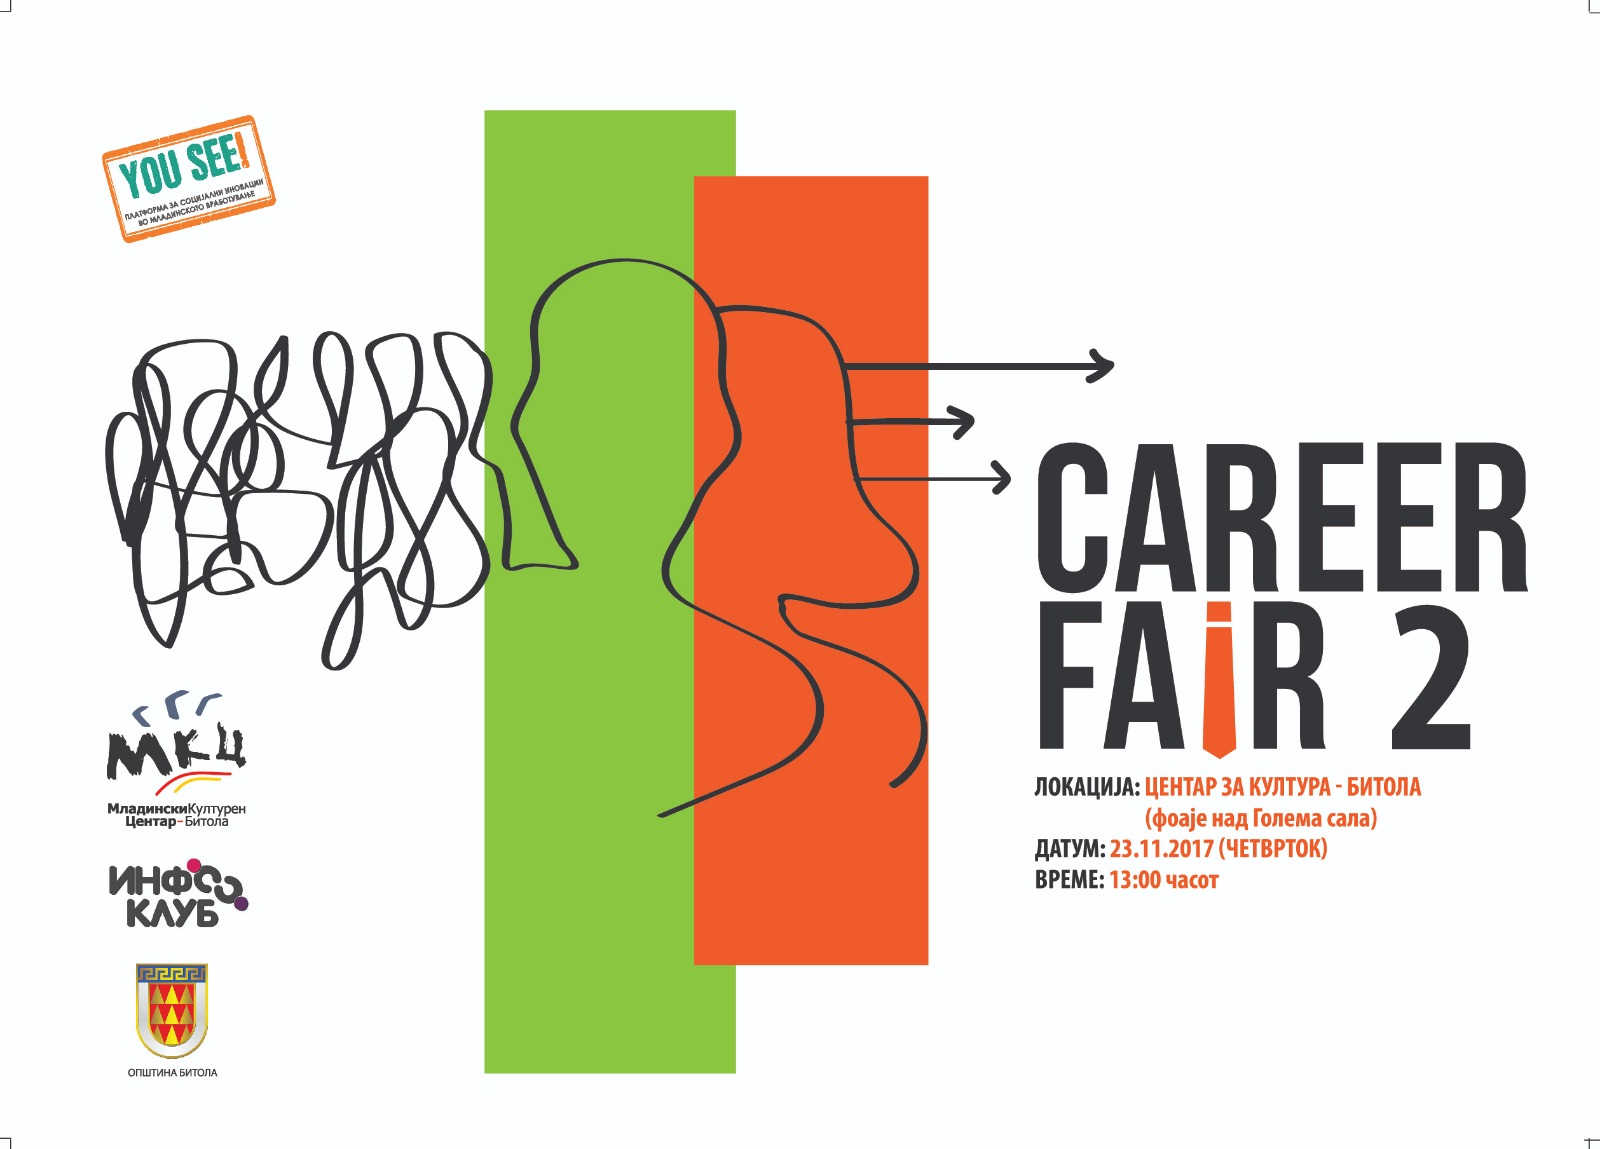 HASELT @ Career Fair 2 in Bitola